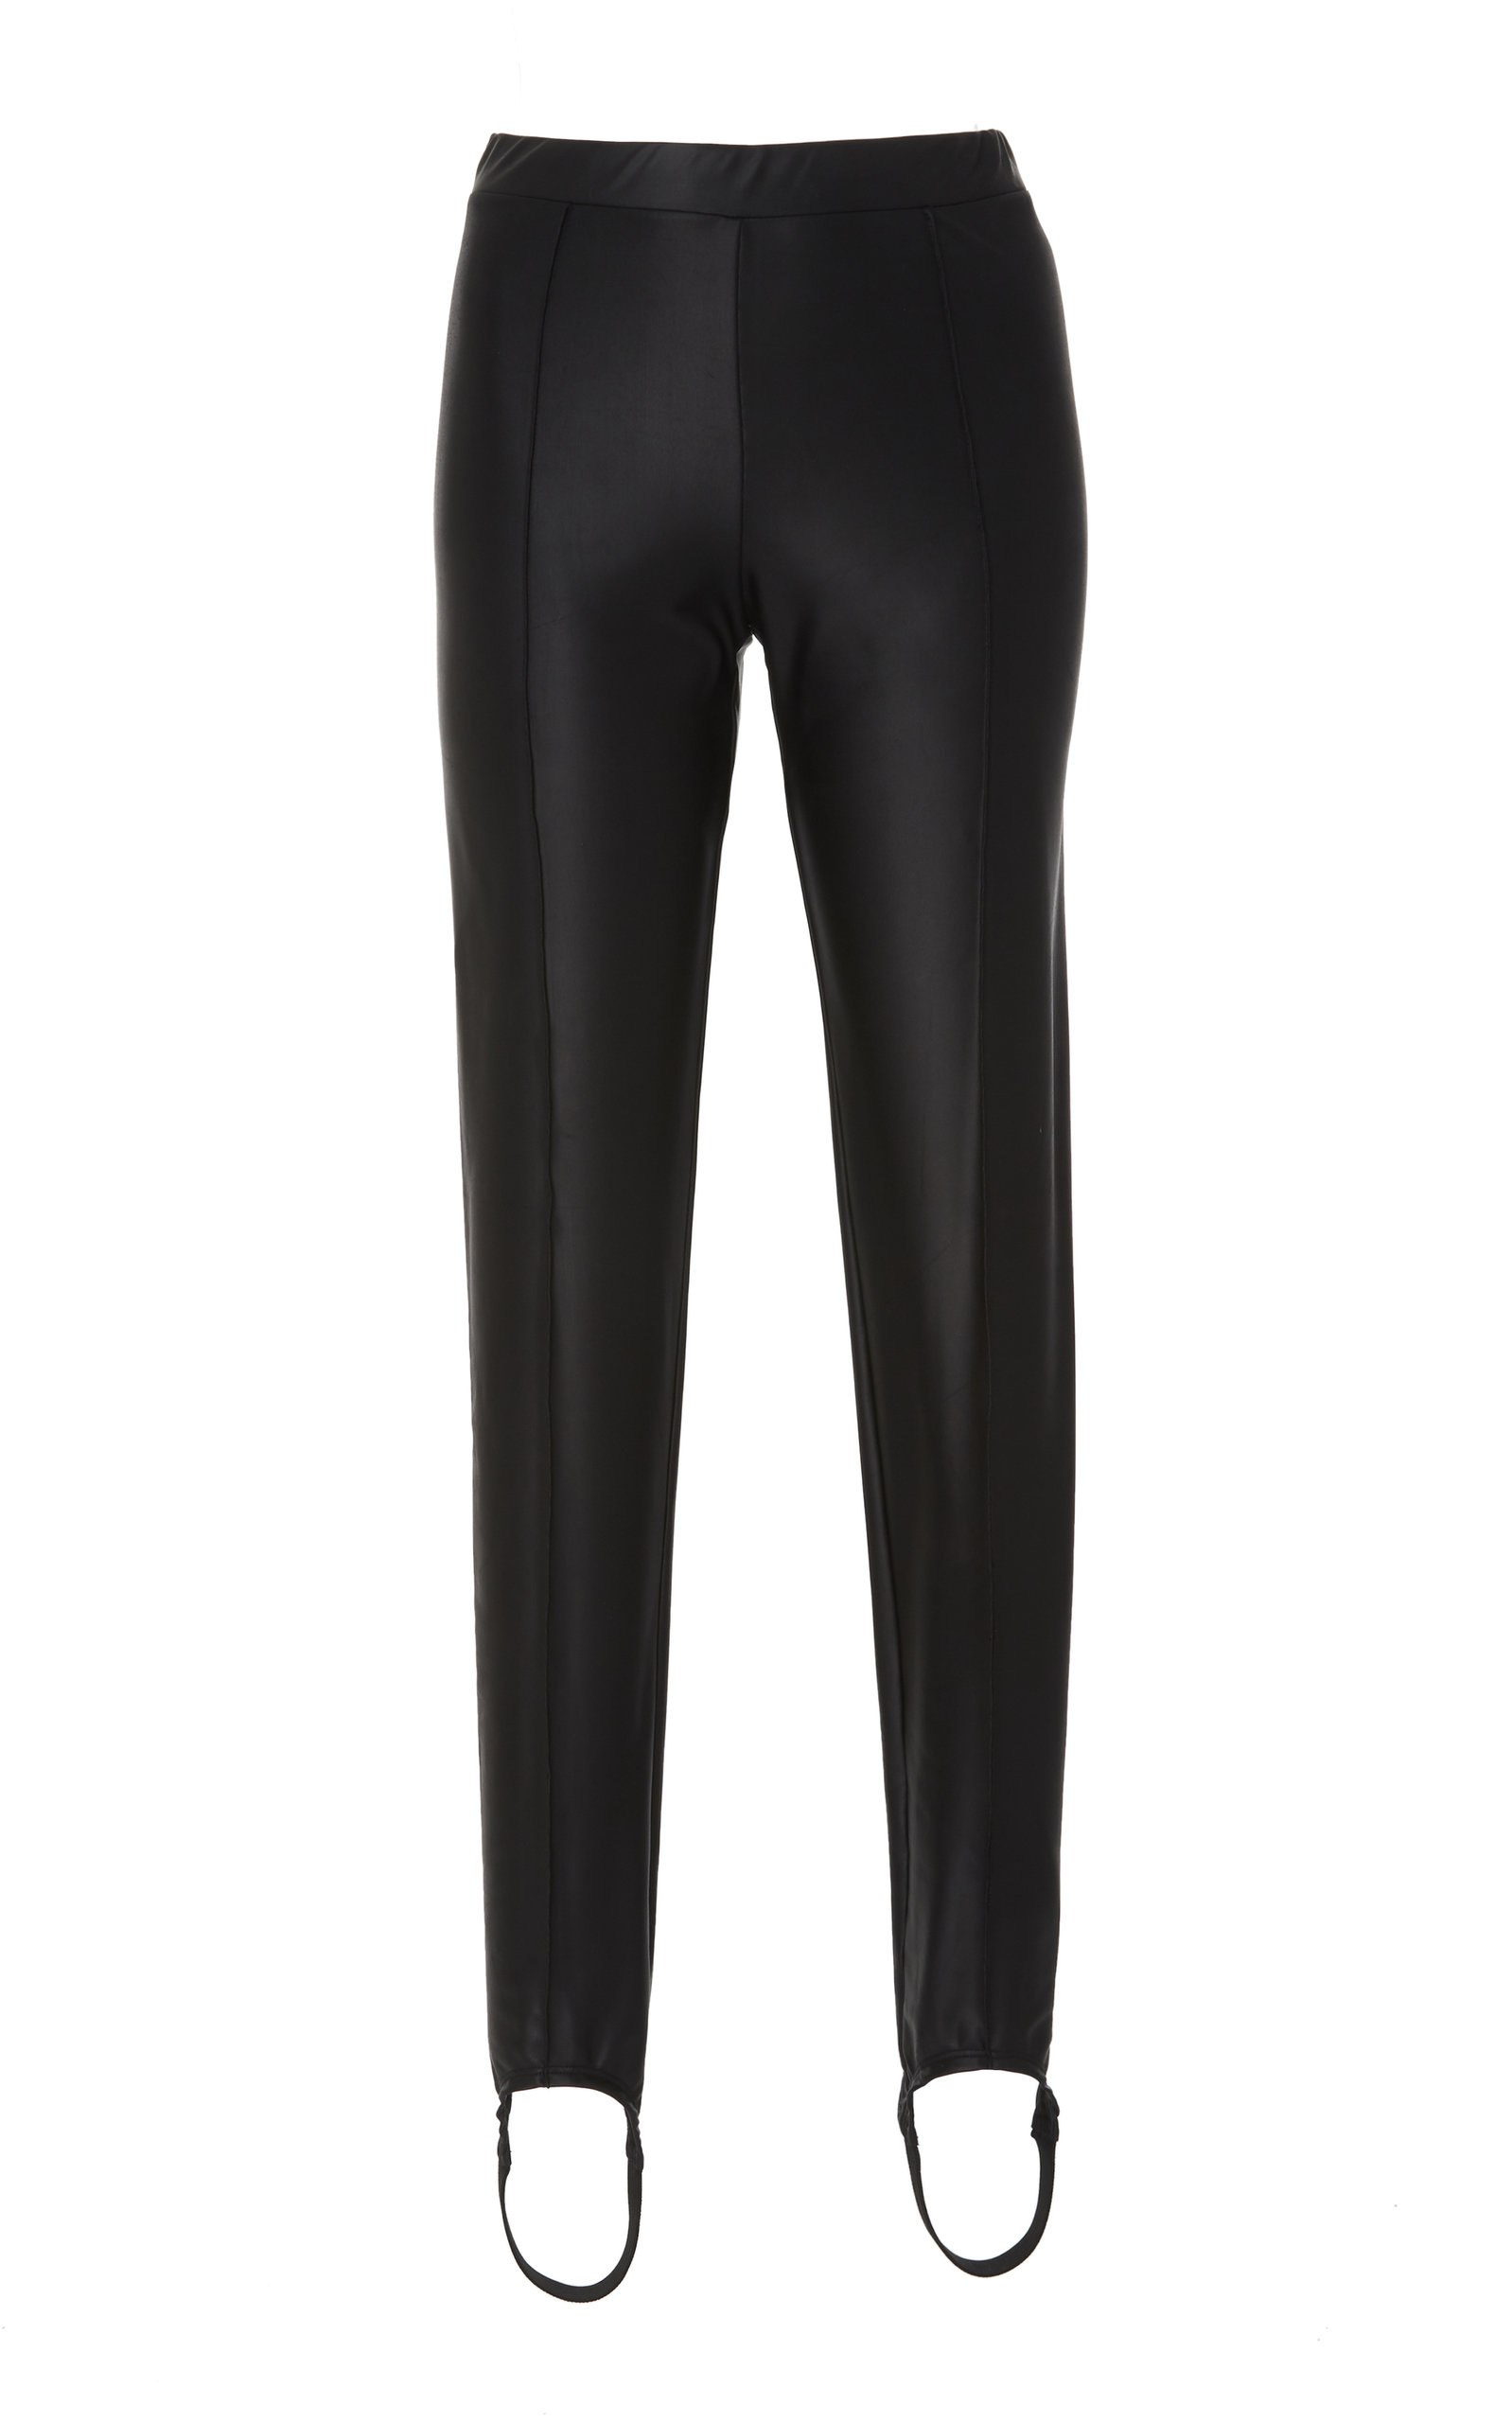 6bdc819eff0c8 Stretch-Jersey Stirrup Pants by ATM | Moda Operandi